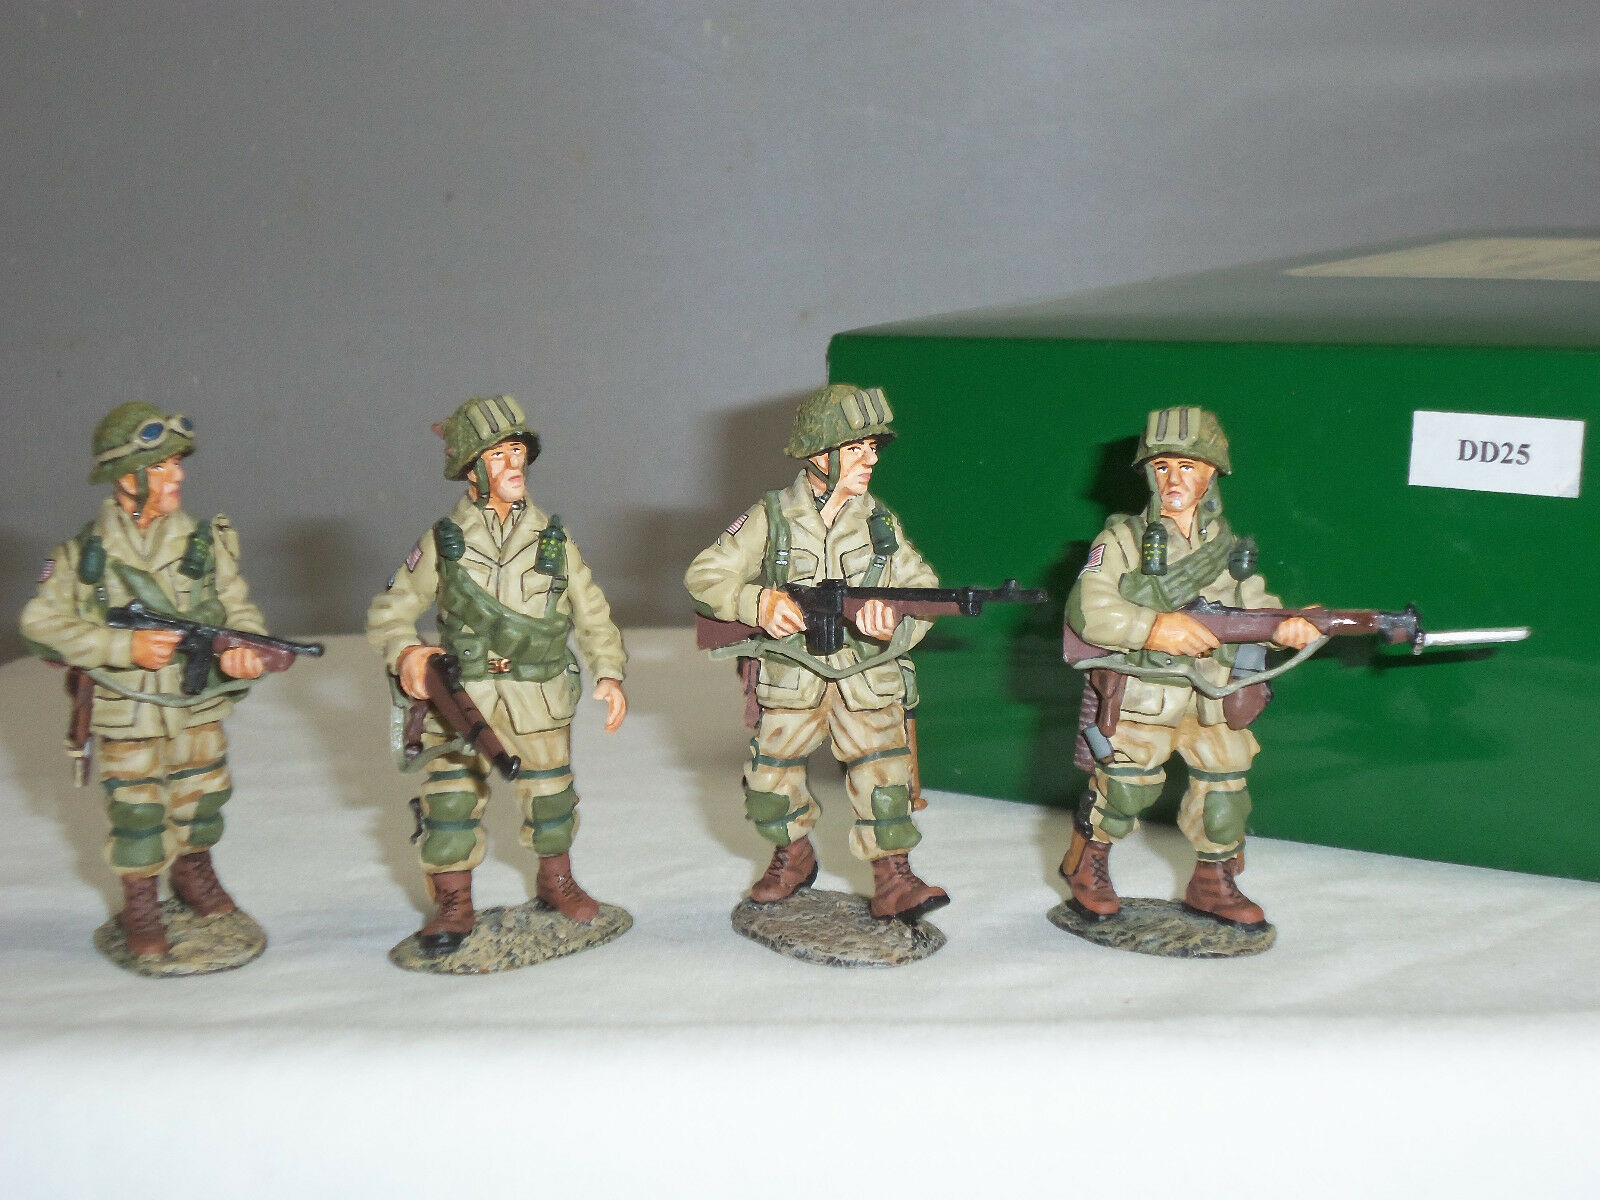 KING AND COUNTRY DD25 US PARATROOPERS FIGHTING PATROL METAL TOY SOLDIER SET